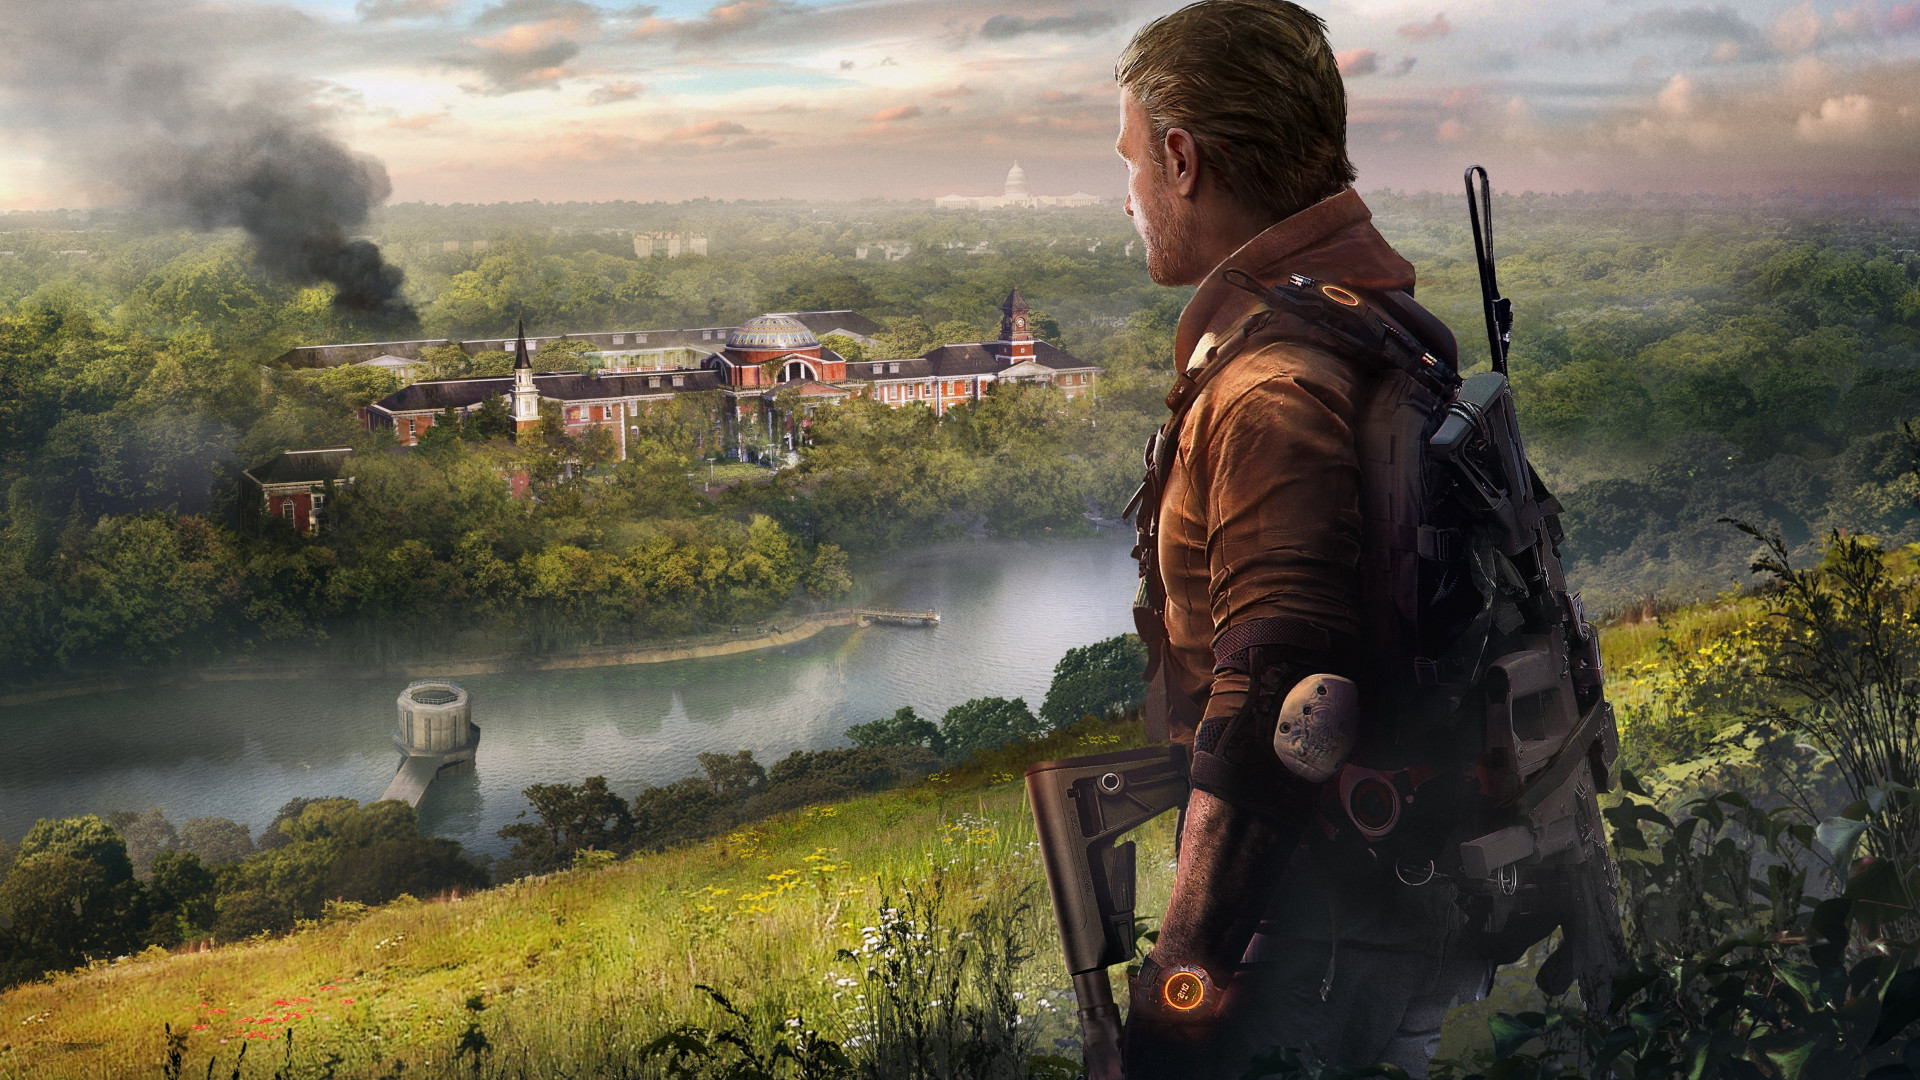 Download Wallpaper Tom Clancy S The Division 2 Episodes